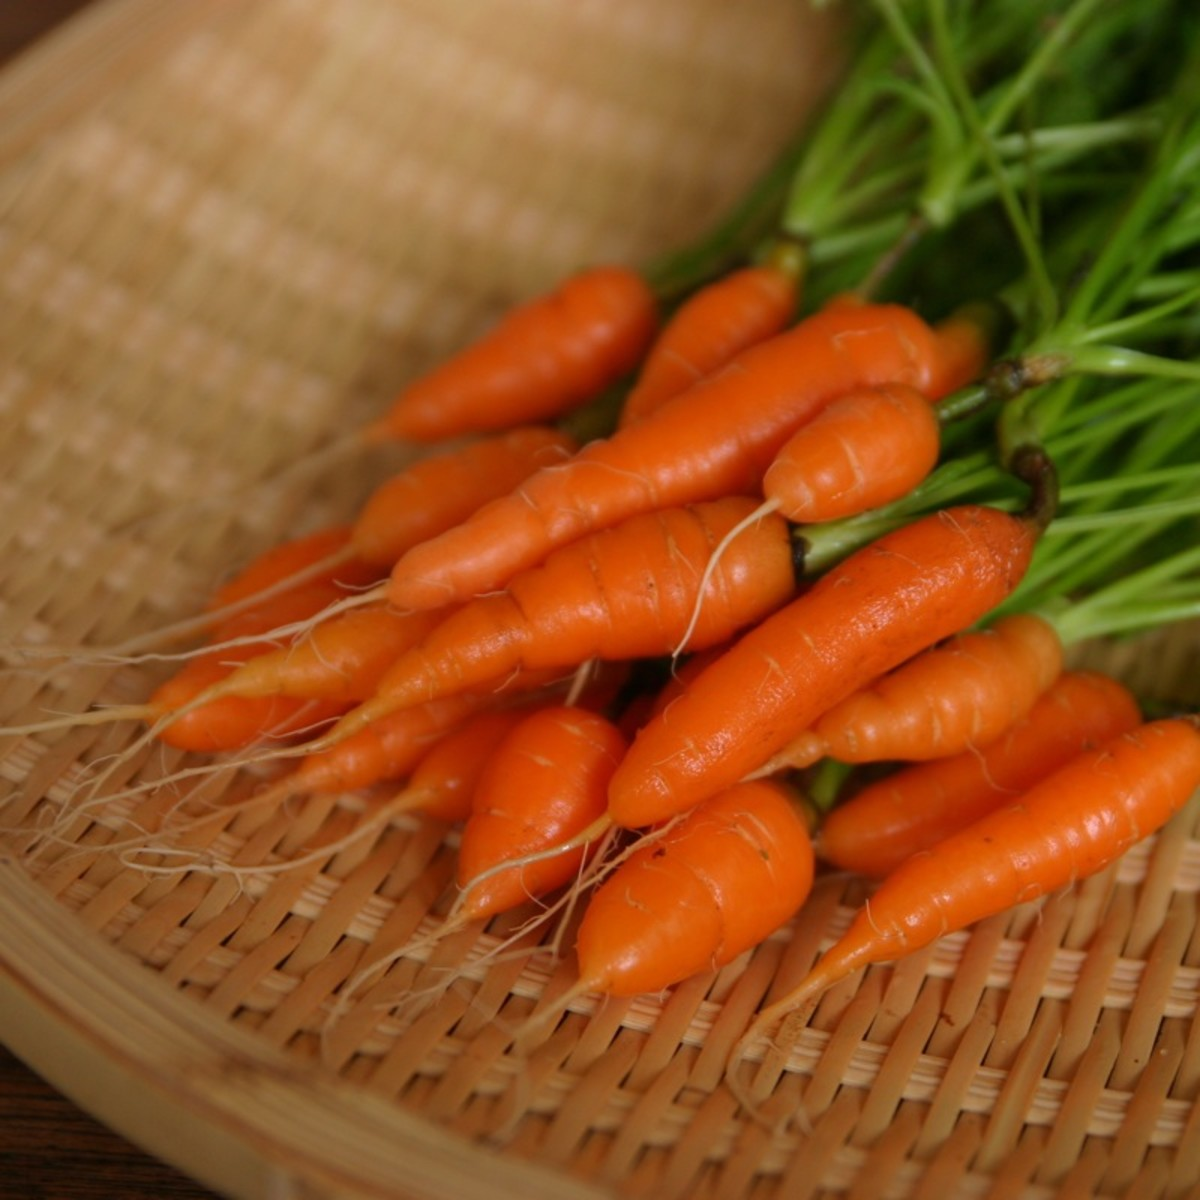 You can harvest carrots early (around 30–45 days) to snag yourself some tender baby carrots.